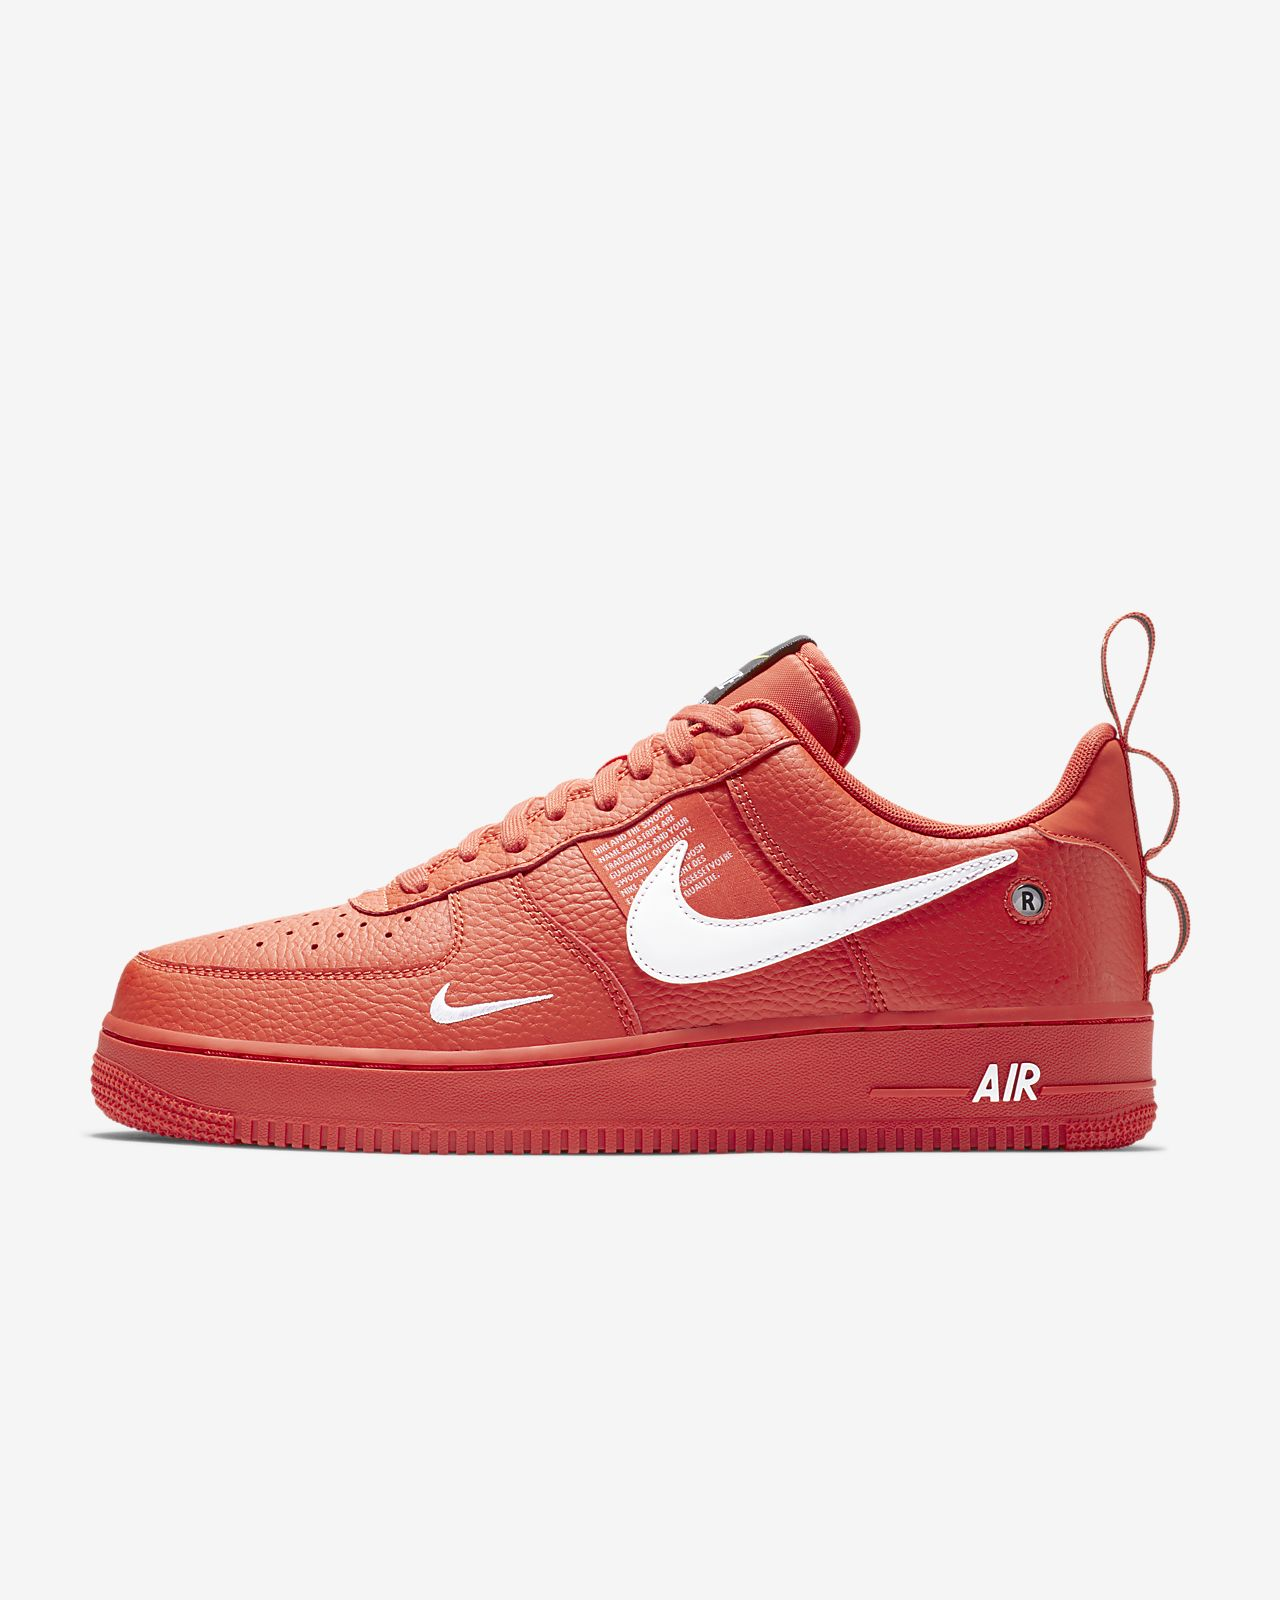 half off 6c607 fac9c ... Nike Air Force 1  07 LV8 Utility Men s Shoe